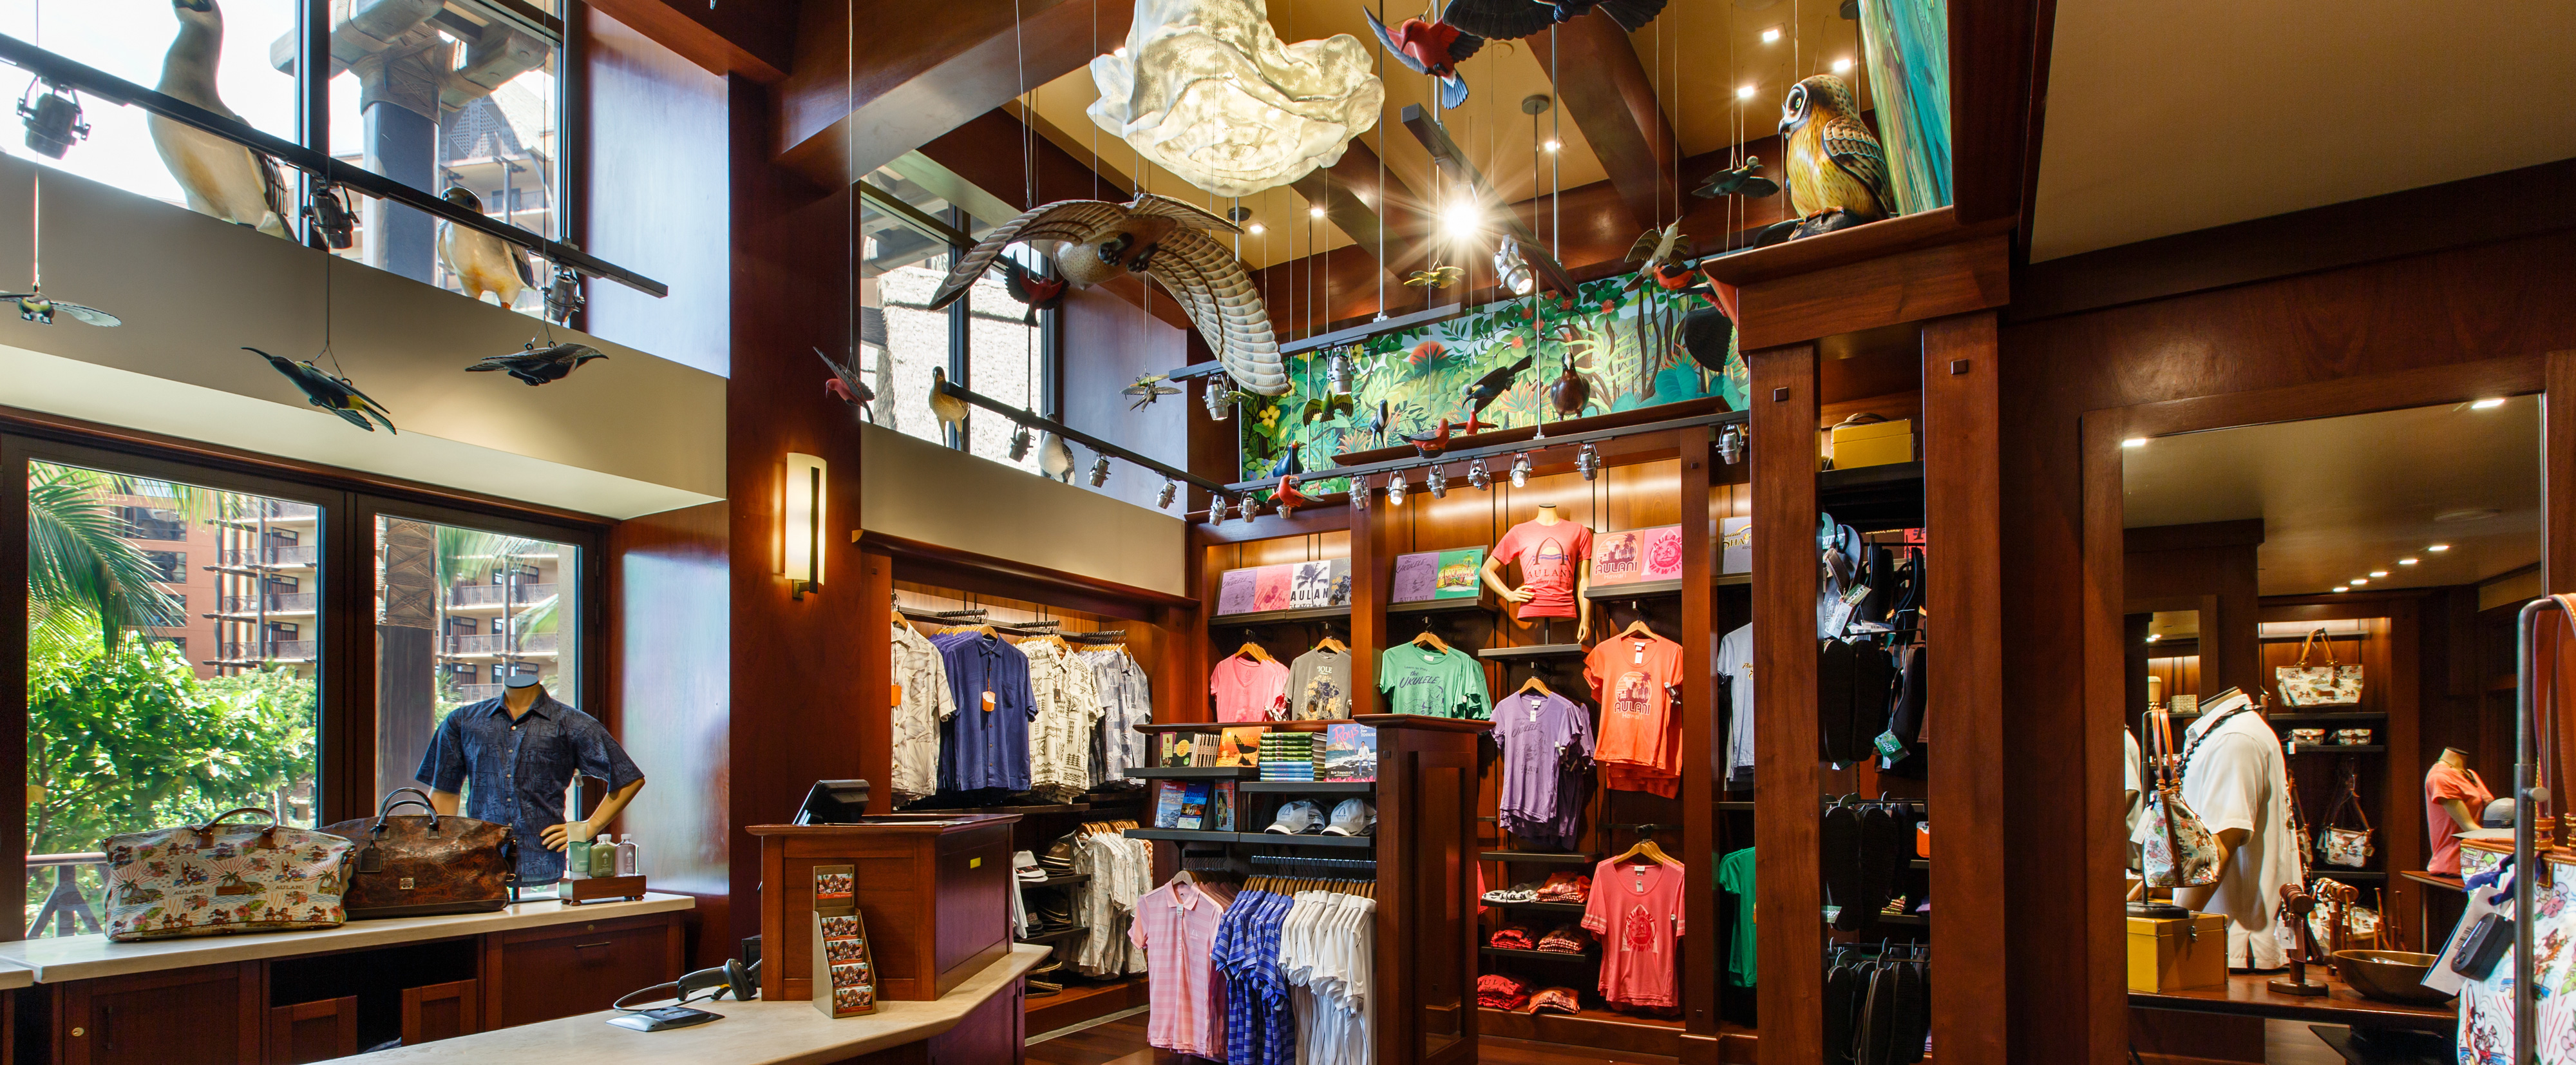 Hanging birds, apparel displays and the cash wrap counter inside Hale Manu boutique